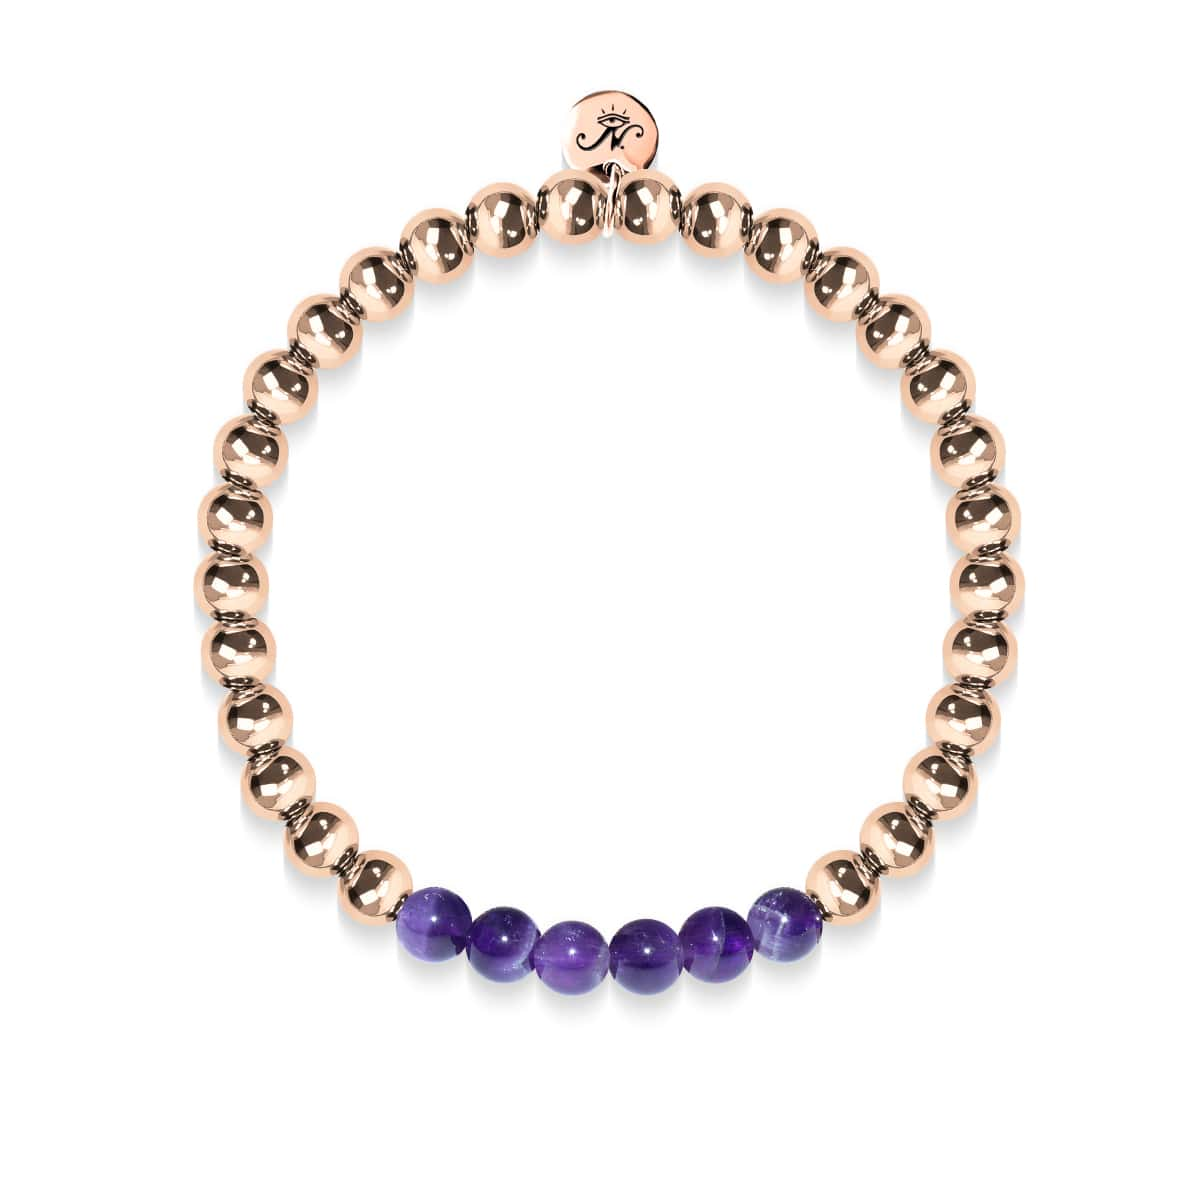 Admiration | 18k Rose Gold | Amethyst | Gemstone Expression Bracelet